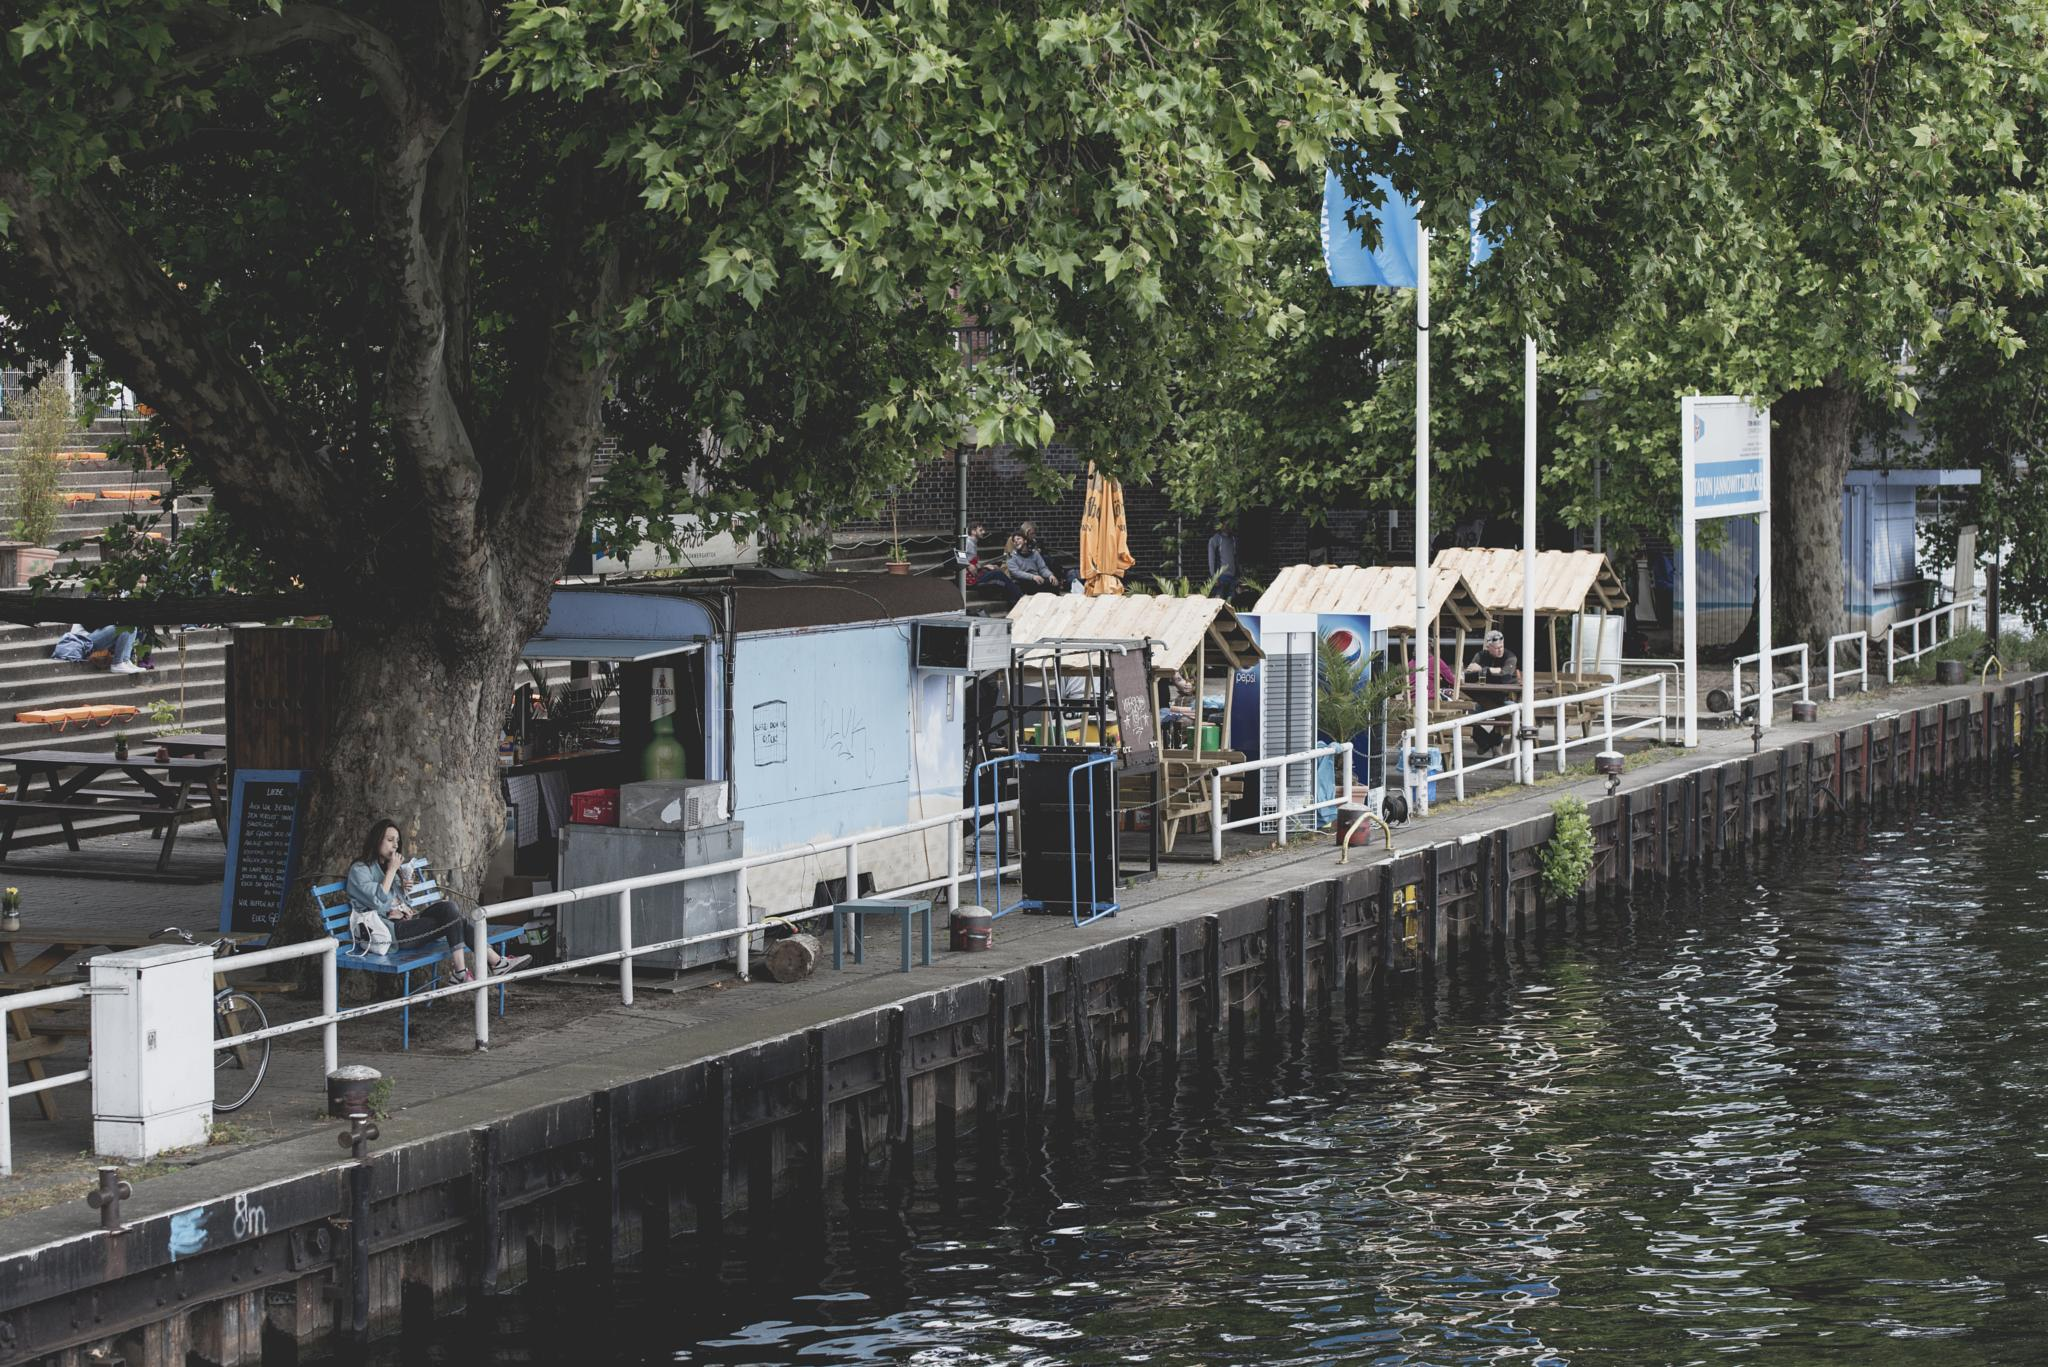 Berlin ... chillout at the rivers by Carsten Busch